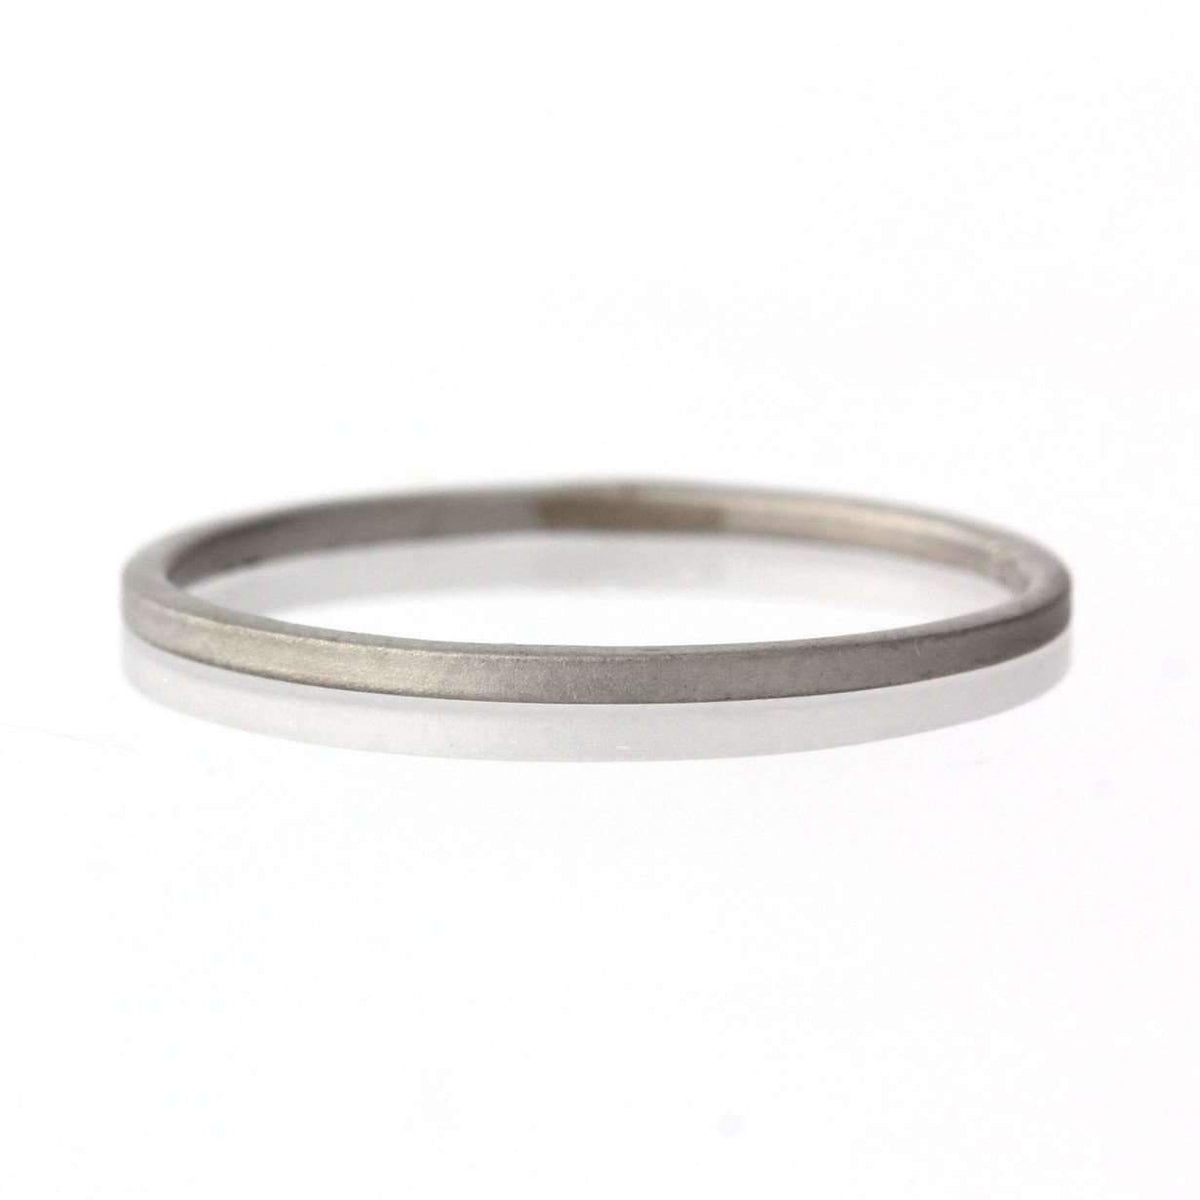 Petite Square Satin Texture Matte Band Minimalist Ring-Alysha Whitfield